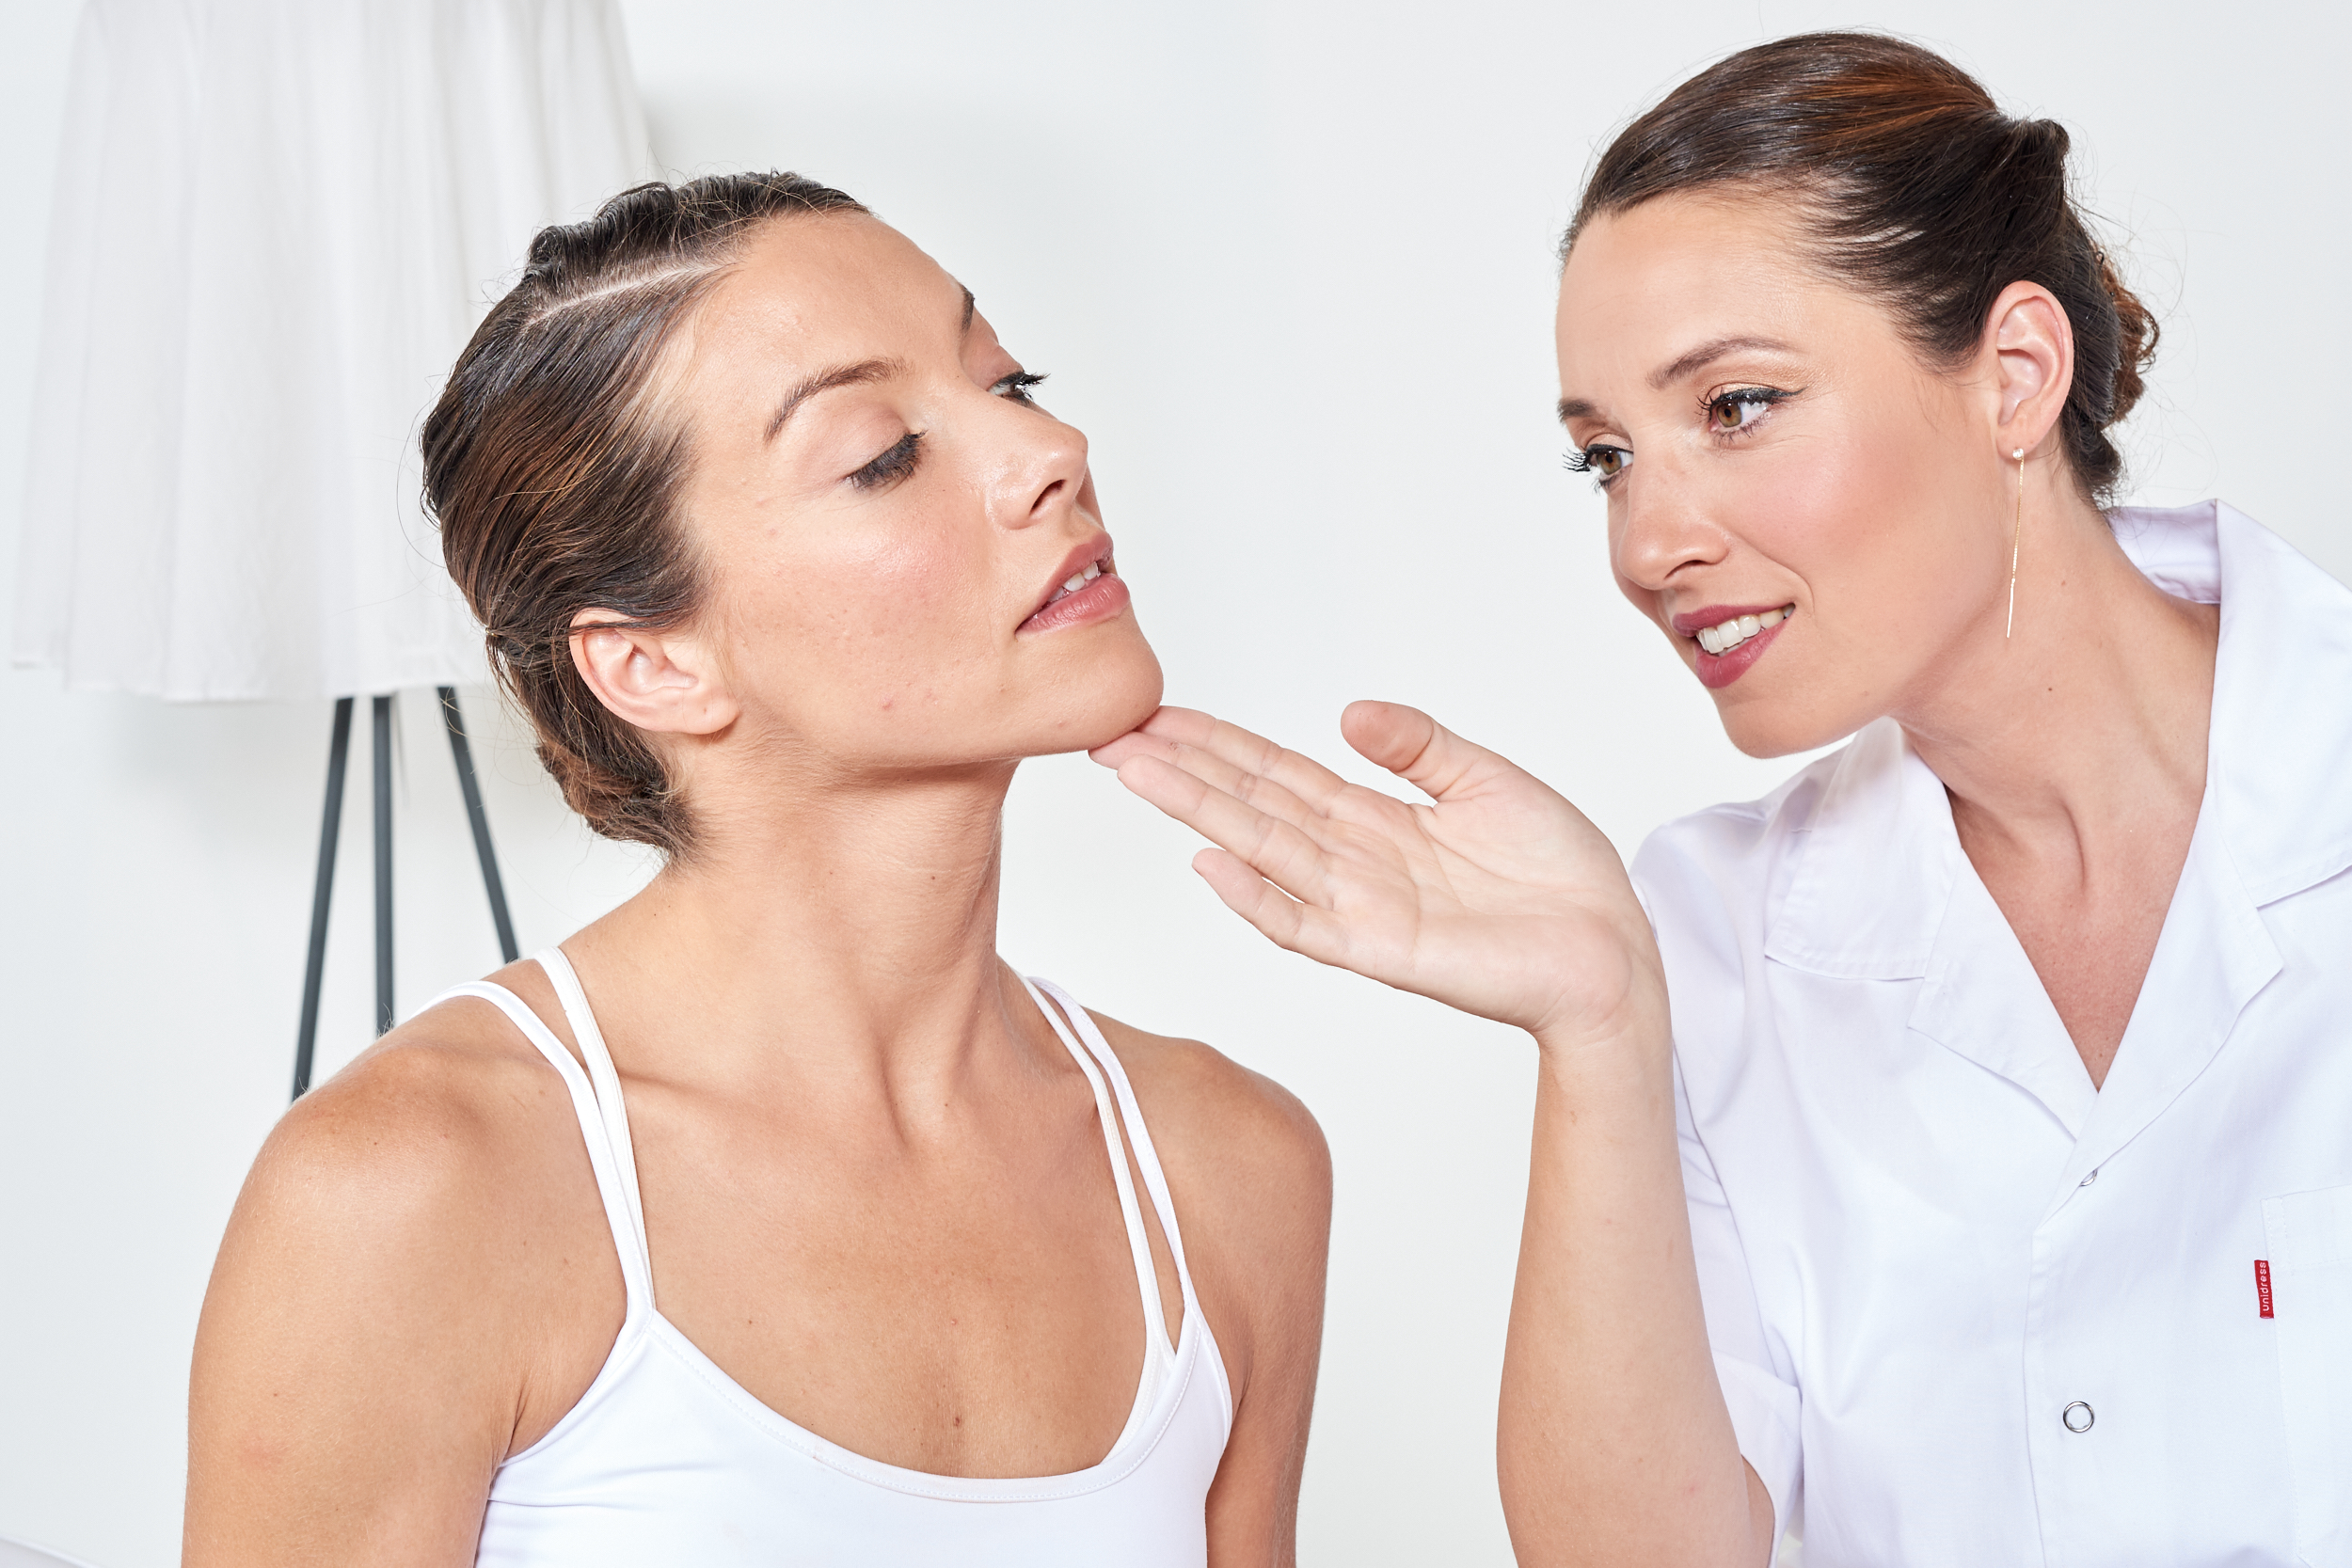 The Importance of Diligence When Treating Acne